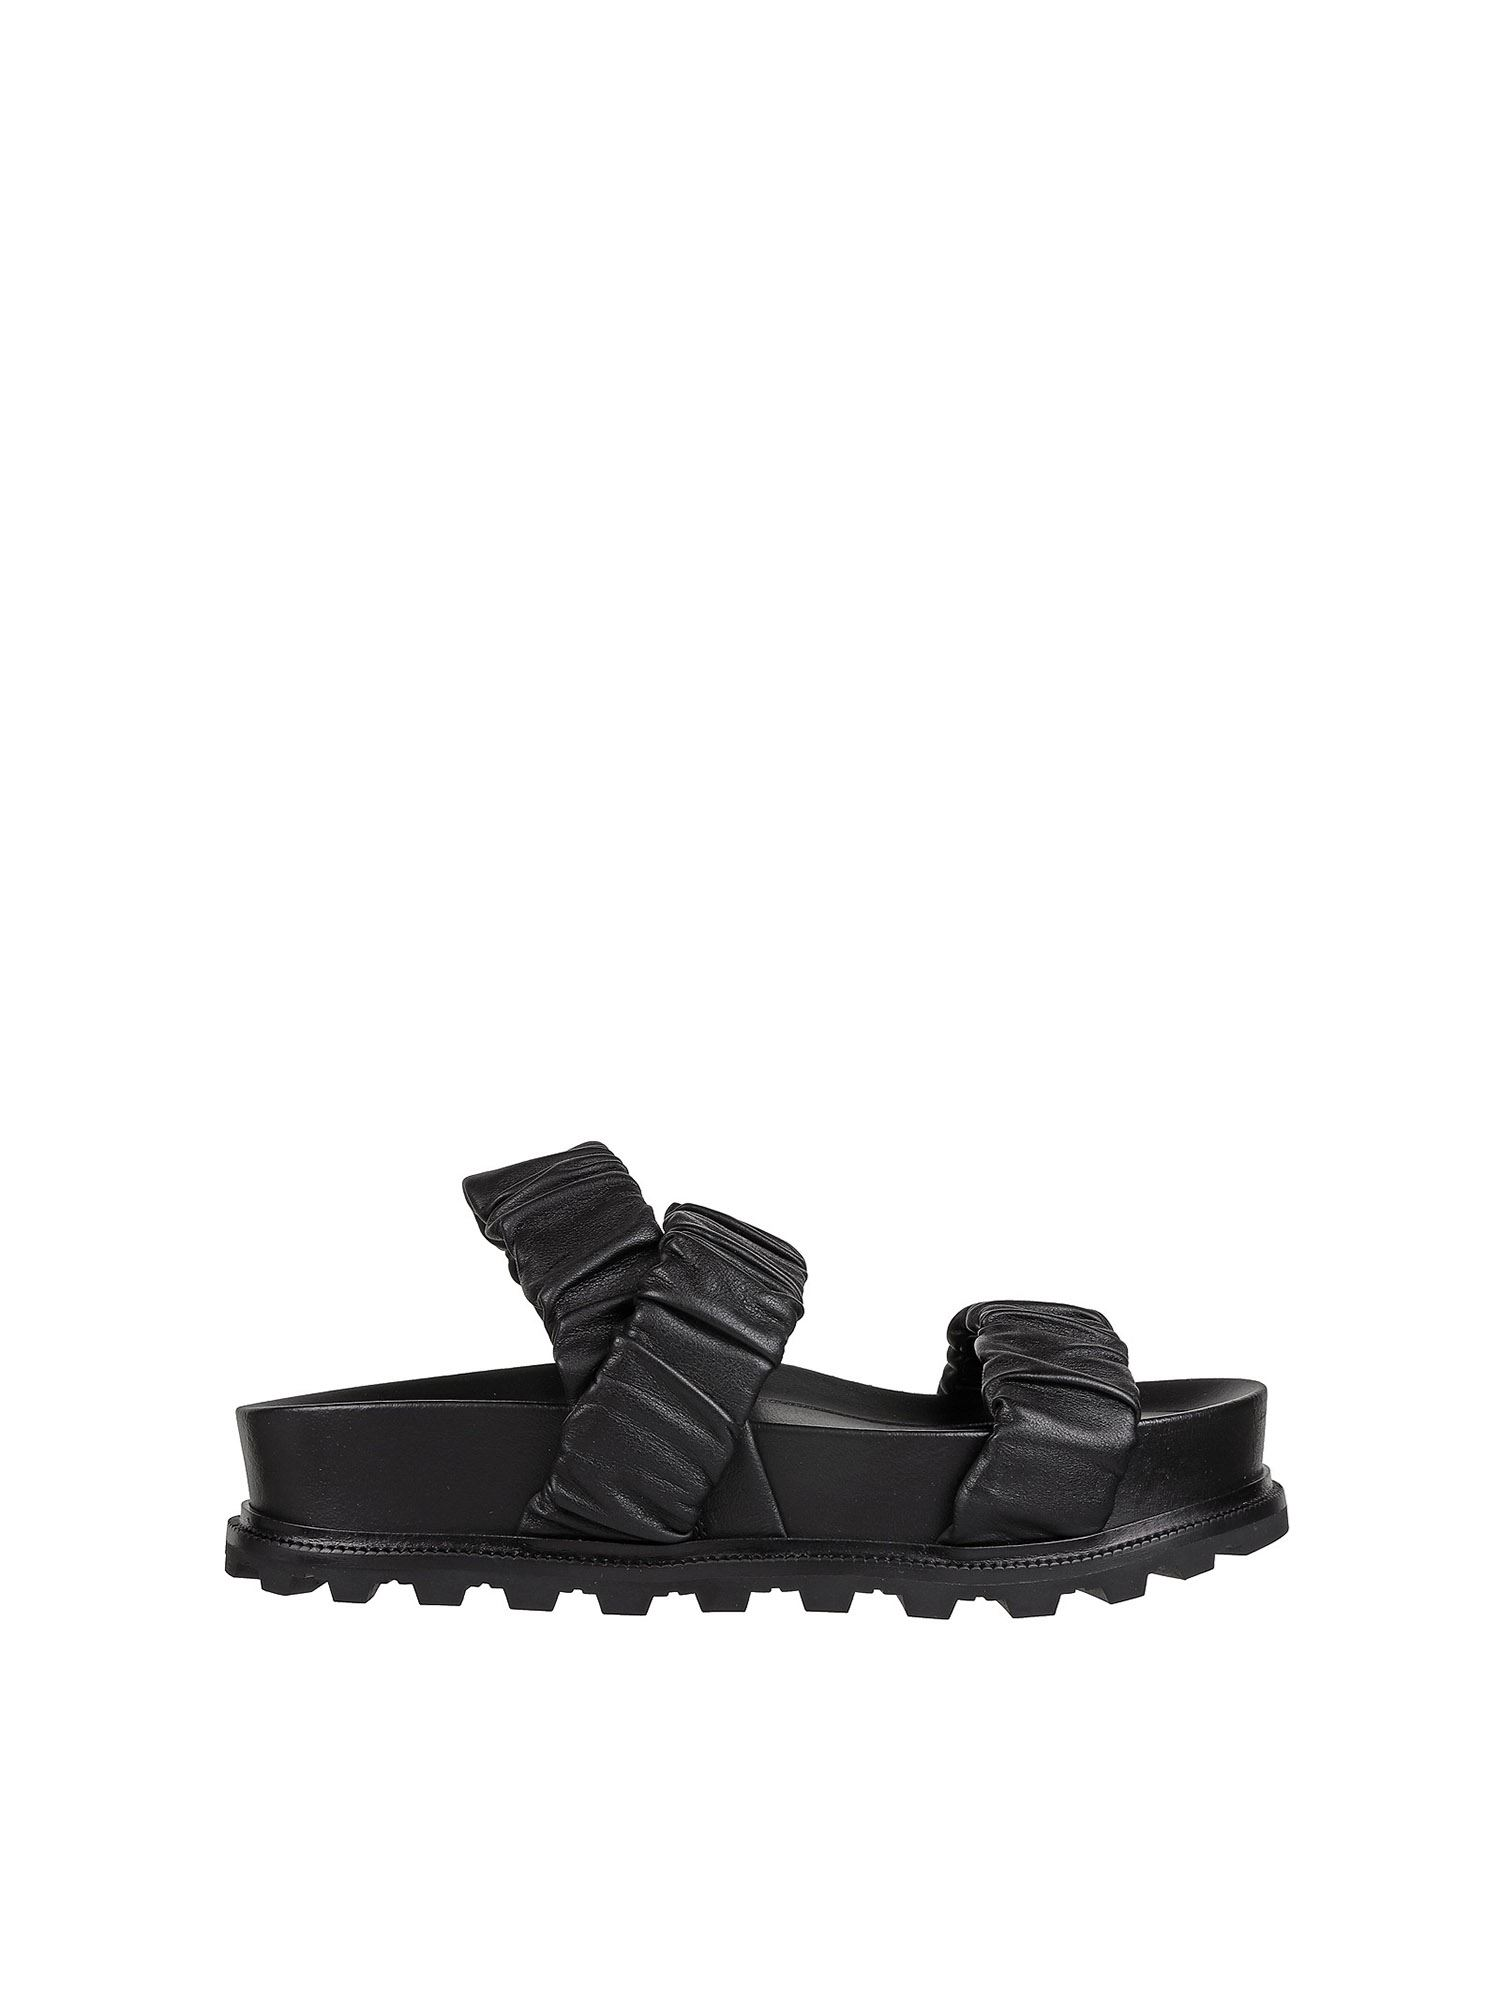 Vic Matie Sandals CHUNKY SANDALS IN BLACK